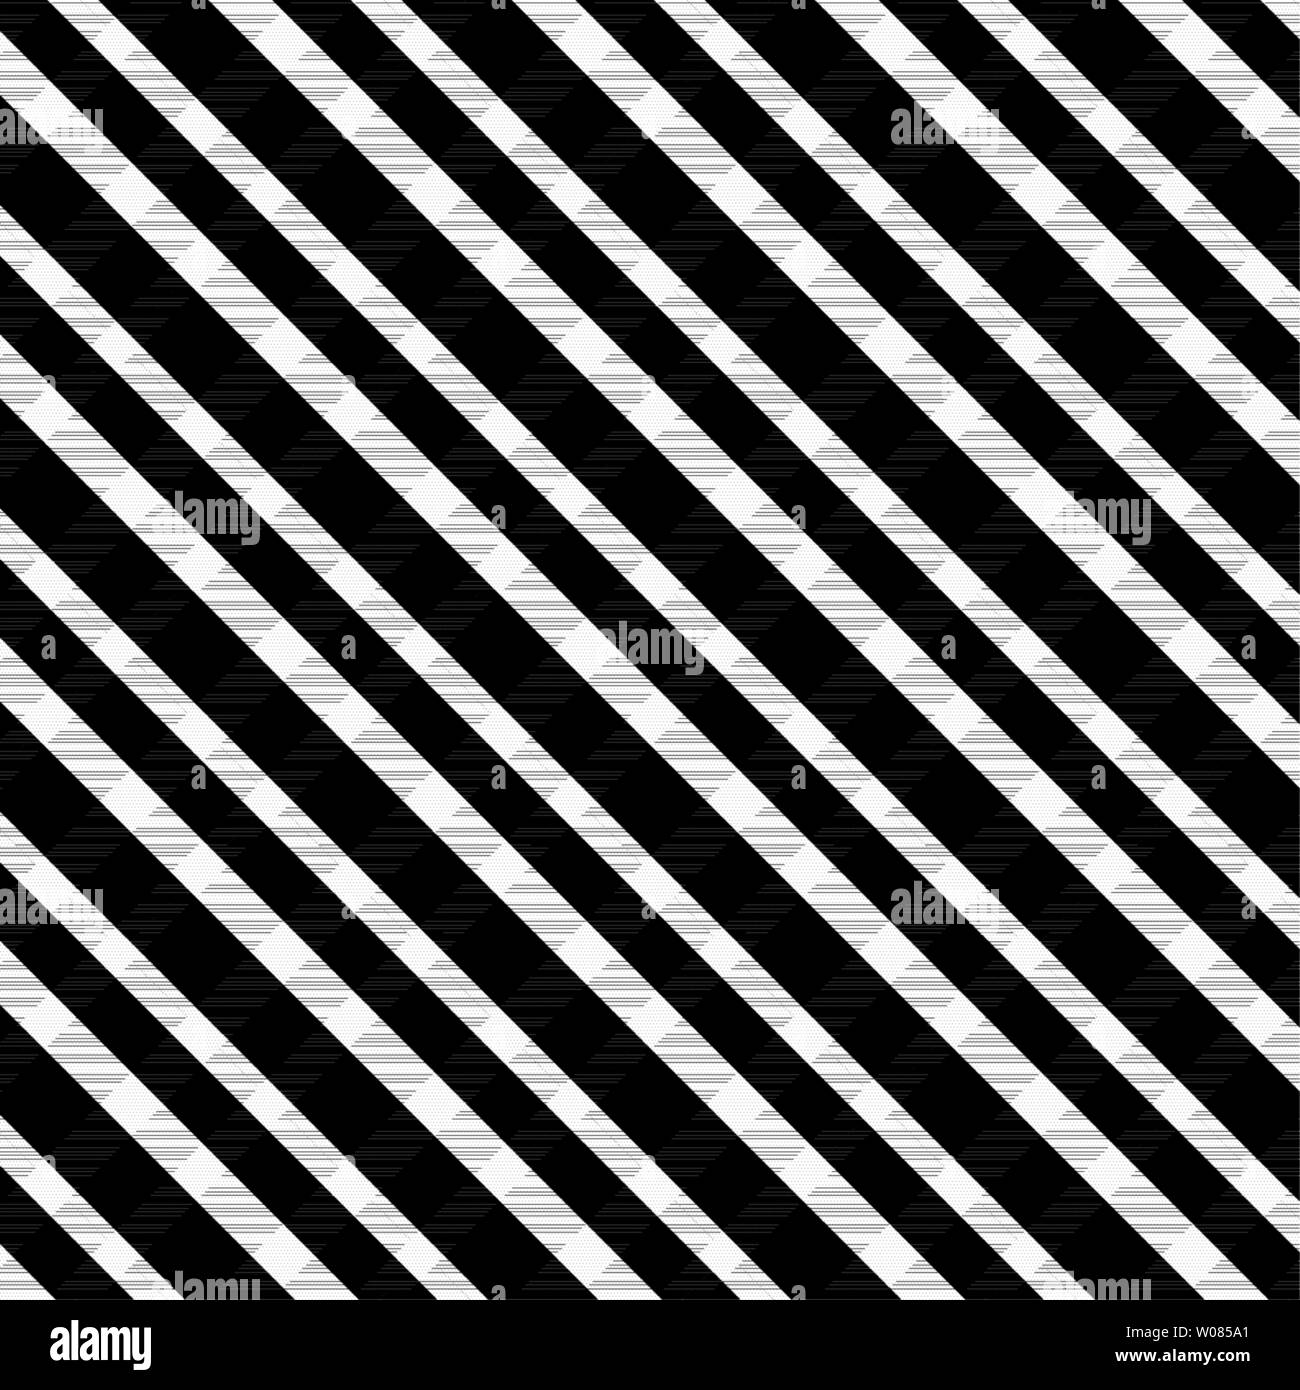 Check Pattern Black and White Stock Photos & Images - Alamy